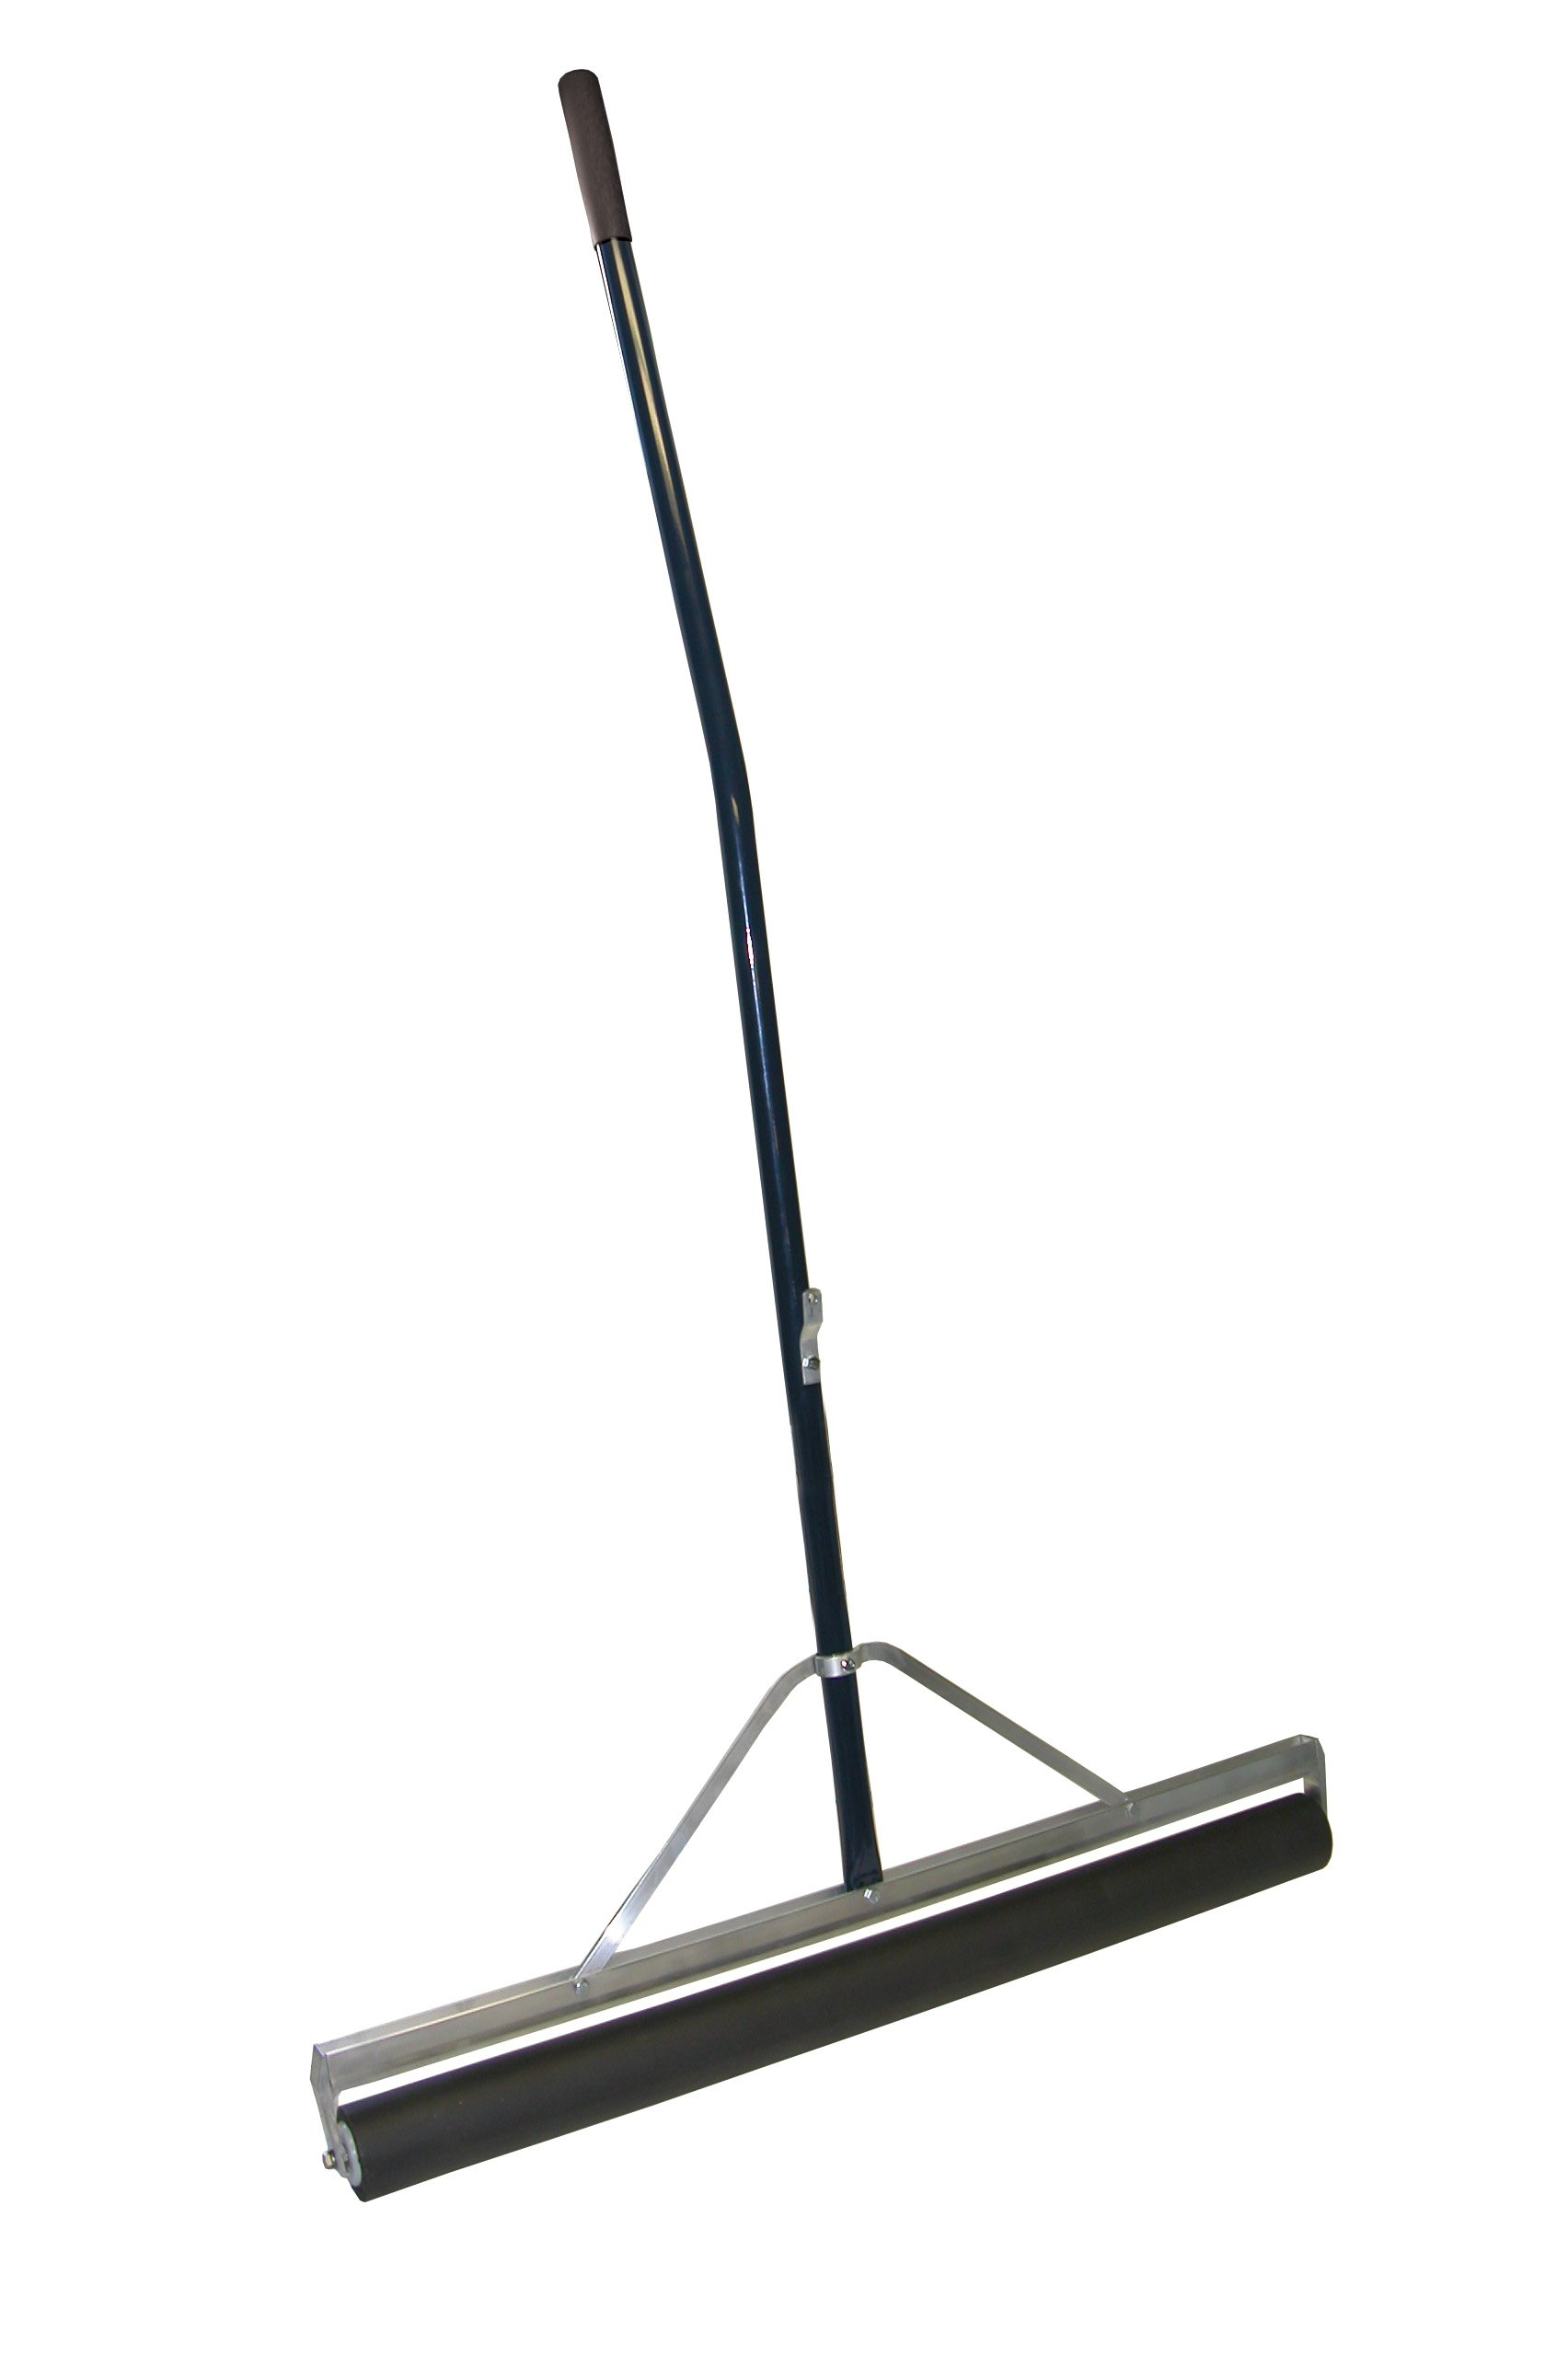 Midwest Rake S550 Professional Series Head Roller Squeegee with Cushion Gripped 60'' Ergonomic Powder-Coated Aluminum Handle, with Replacement Roller (Various Sizes: 24'' to 48'')